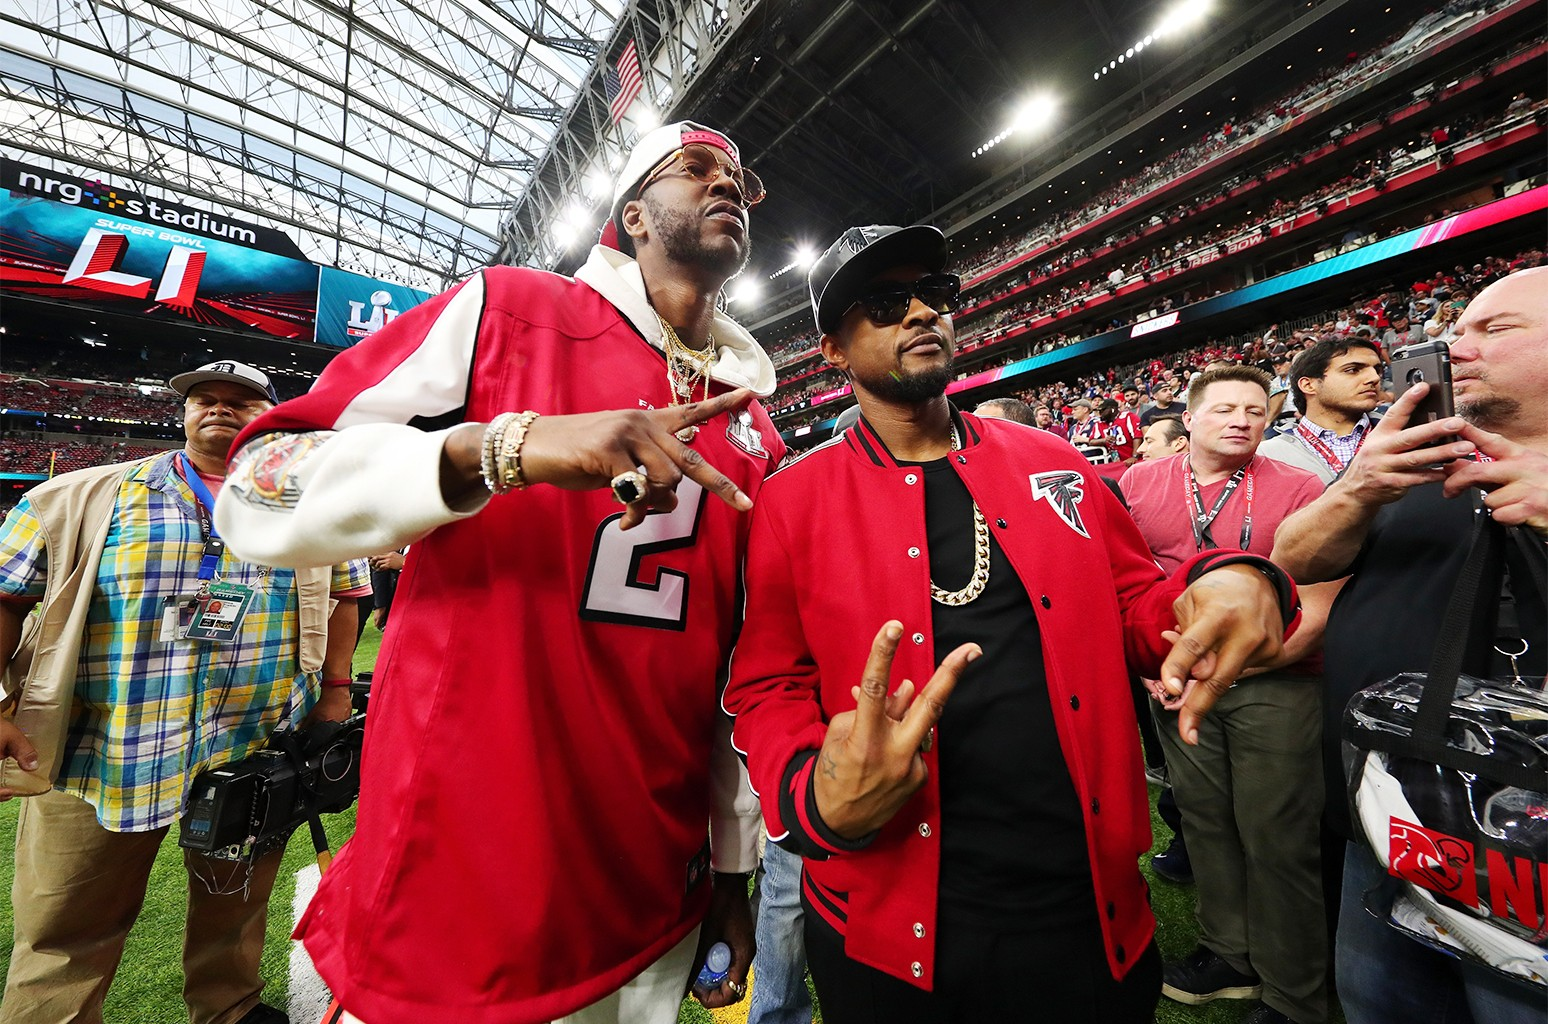 2 Chainz and Usher pose prior to Super Bowl 51 between the New England Patriots and the Atlanta Falcons at NRG Stadium on Feb. 5, 2017 in Houston.